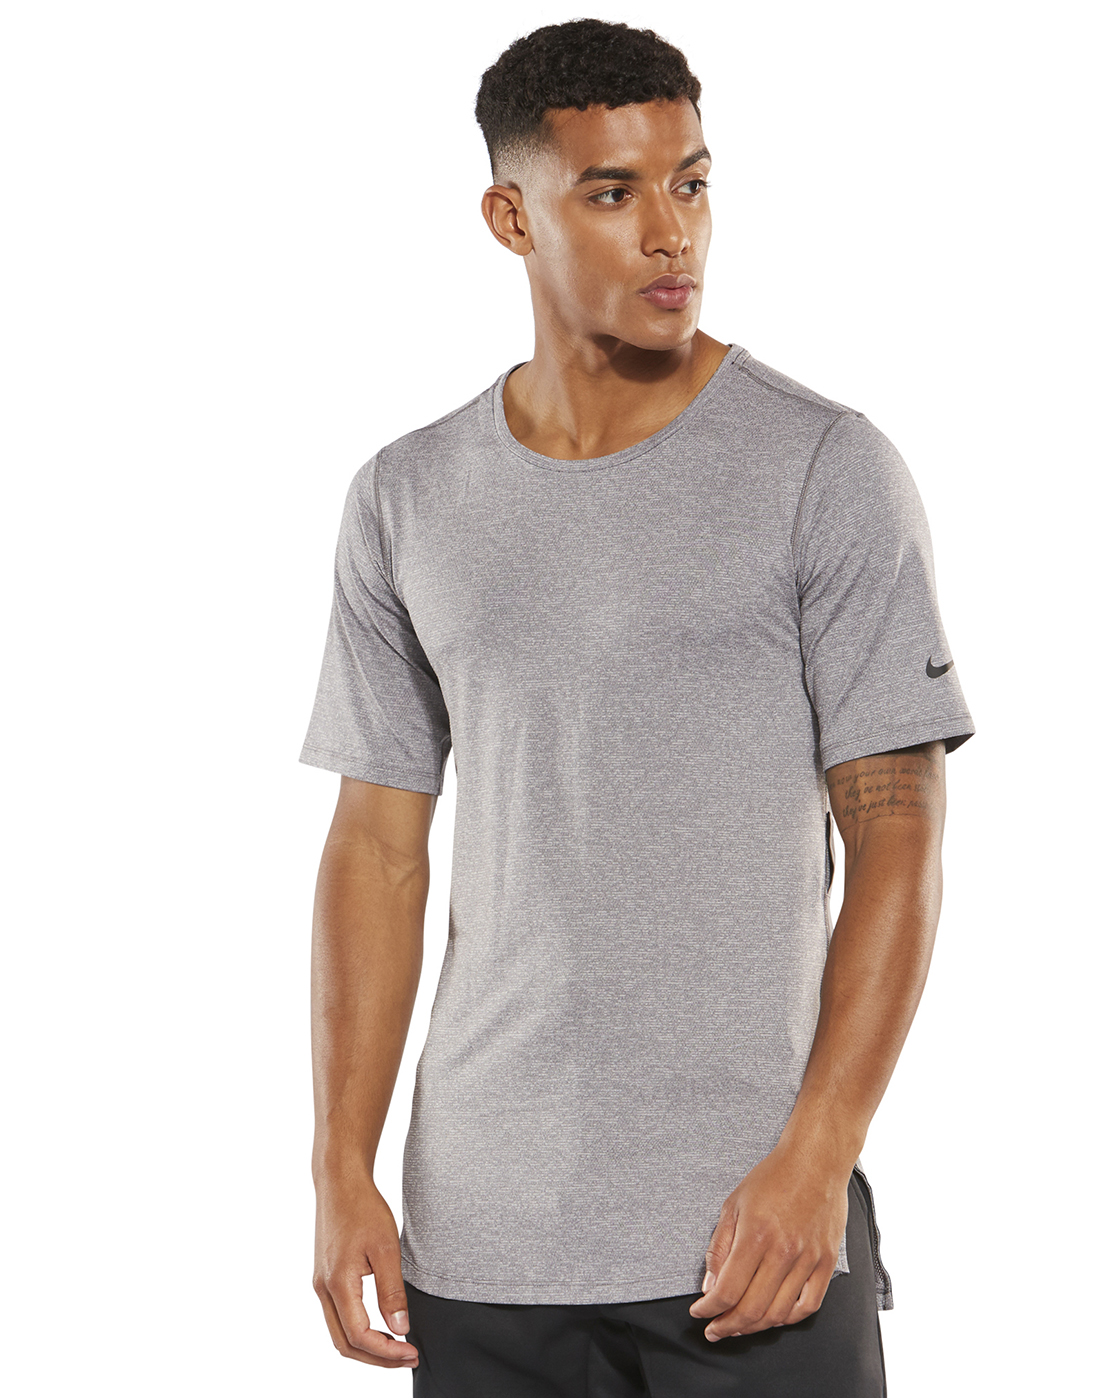 9851871c Men's Nike Fitted Performance T-Shirt | Grey | Life Style Sports